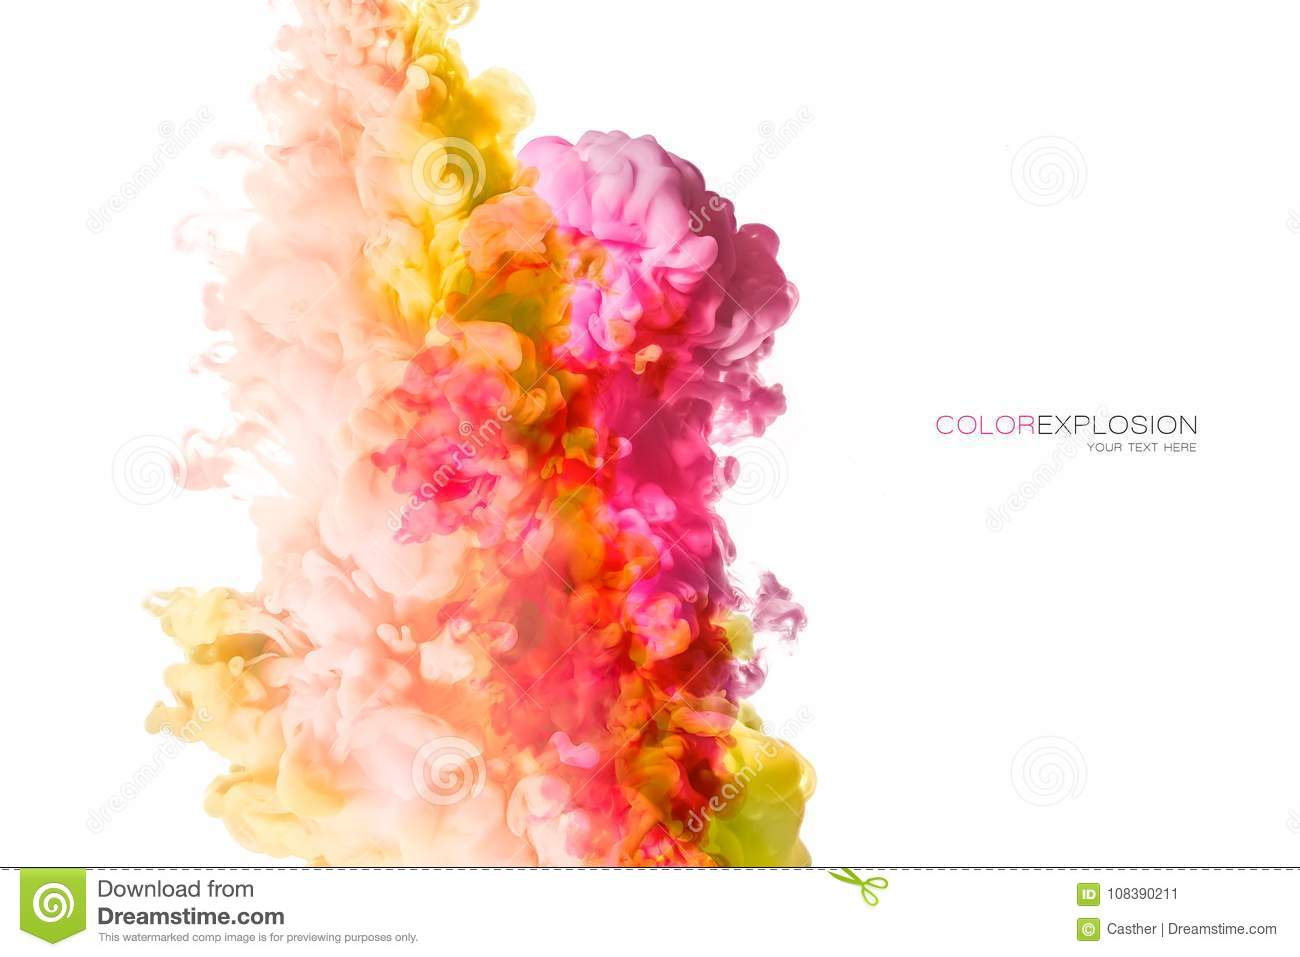 Rainbow Of Acrylic Ink In Water. Color Explosion Stock Image - Image ...